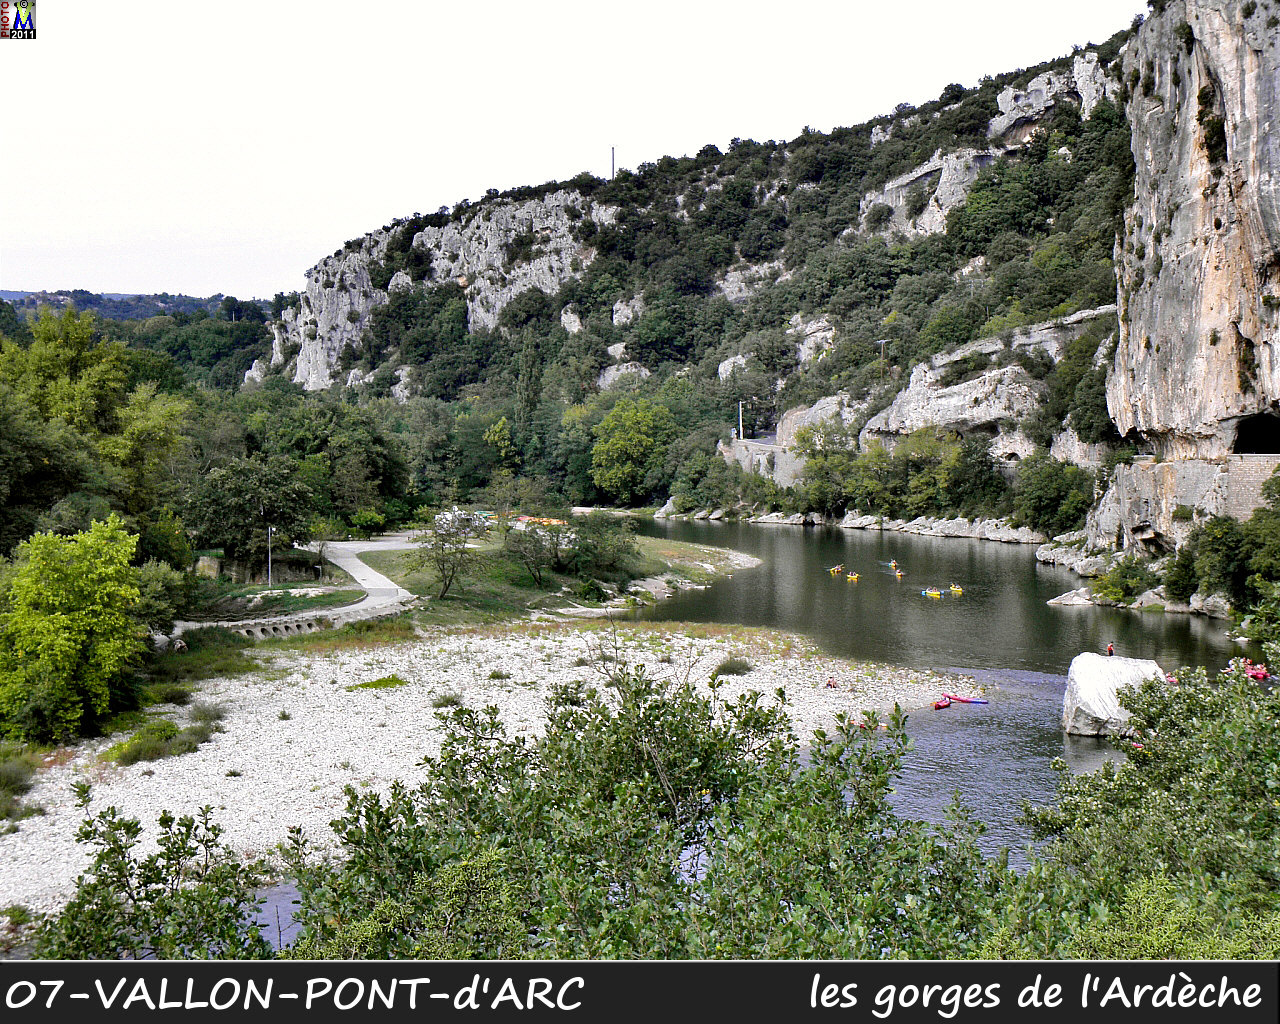 07VALLON-PONT-ARC_gorges_104.jpg